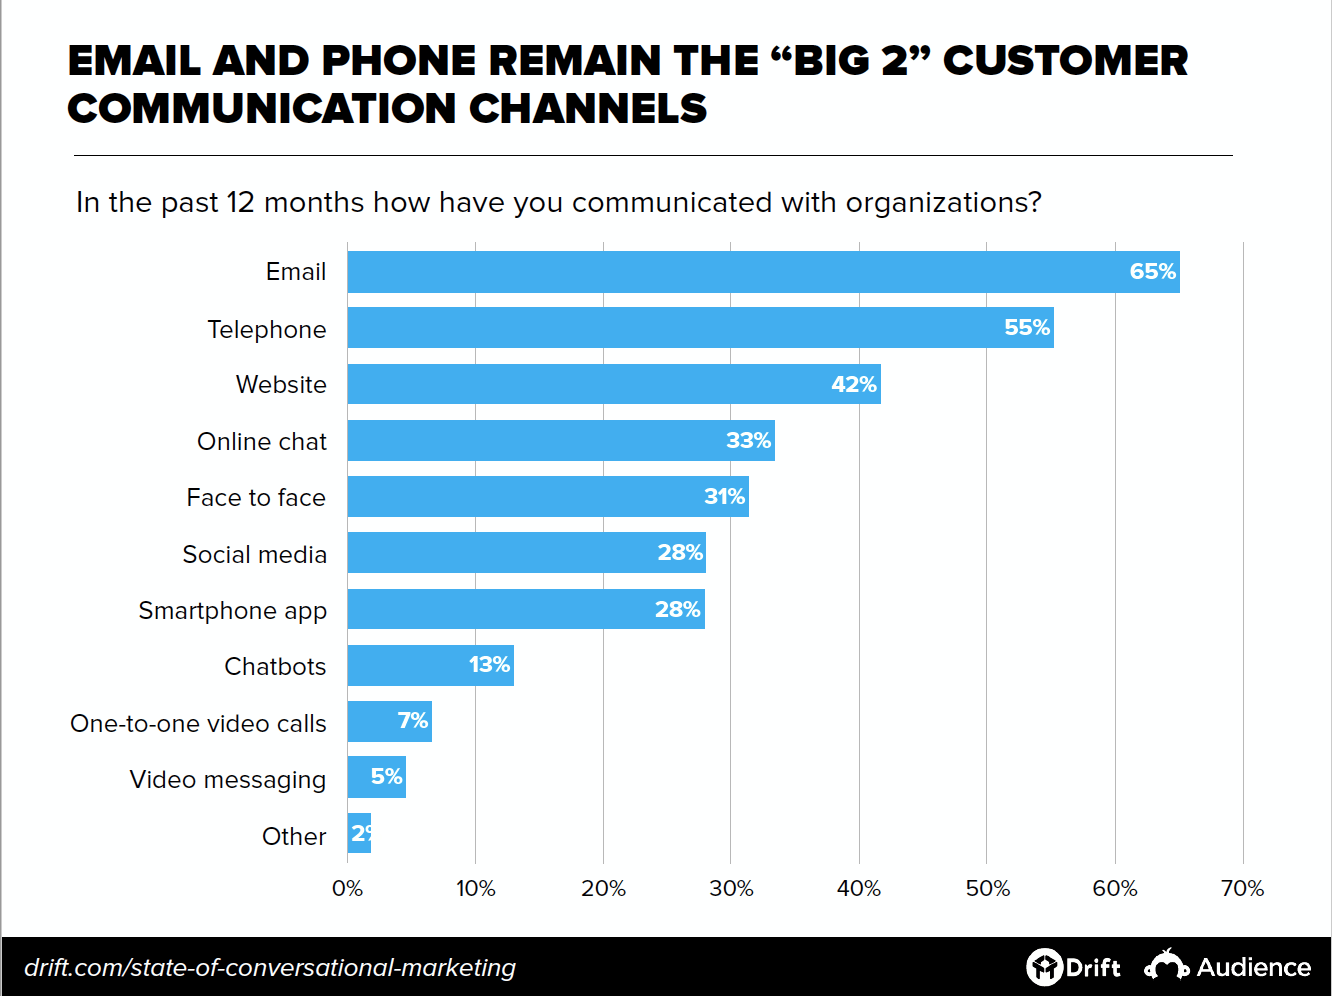 Customer communication channels